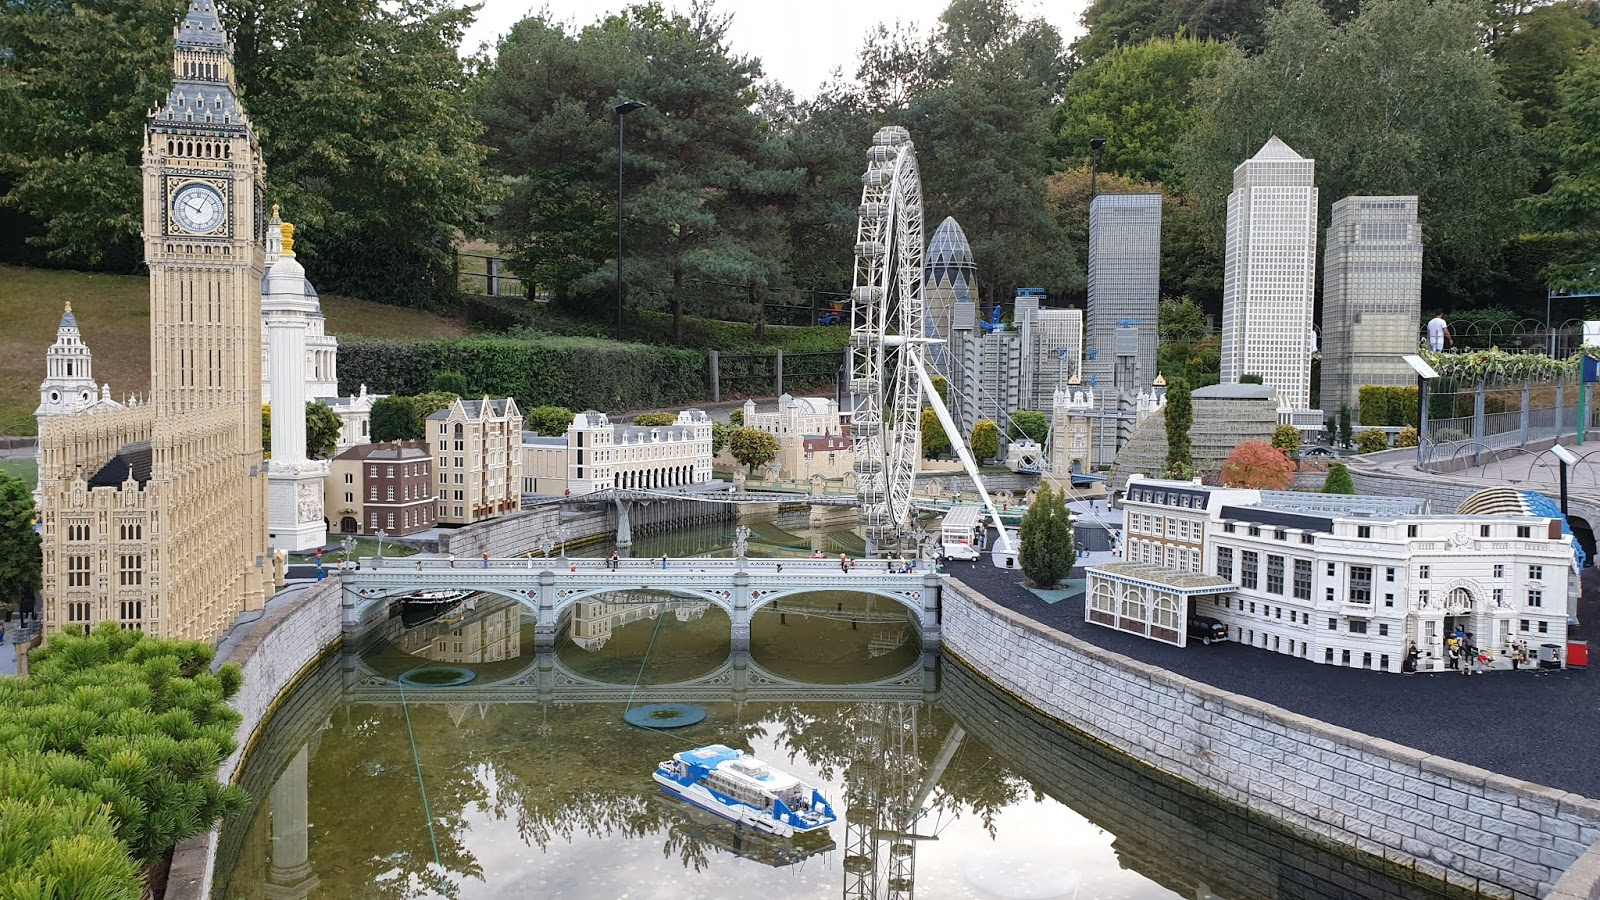 legoland london models